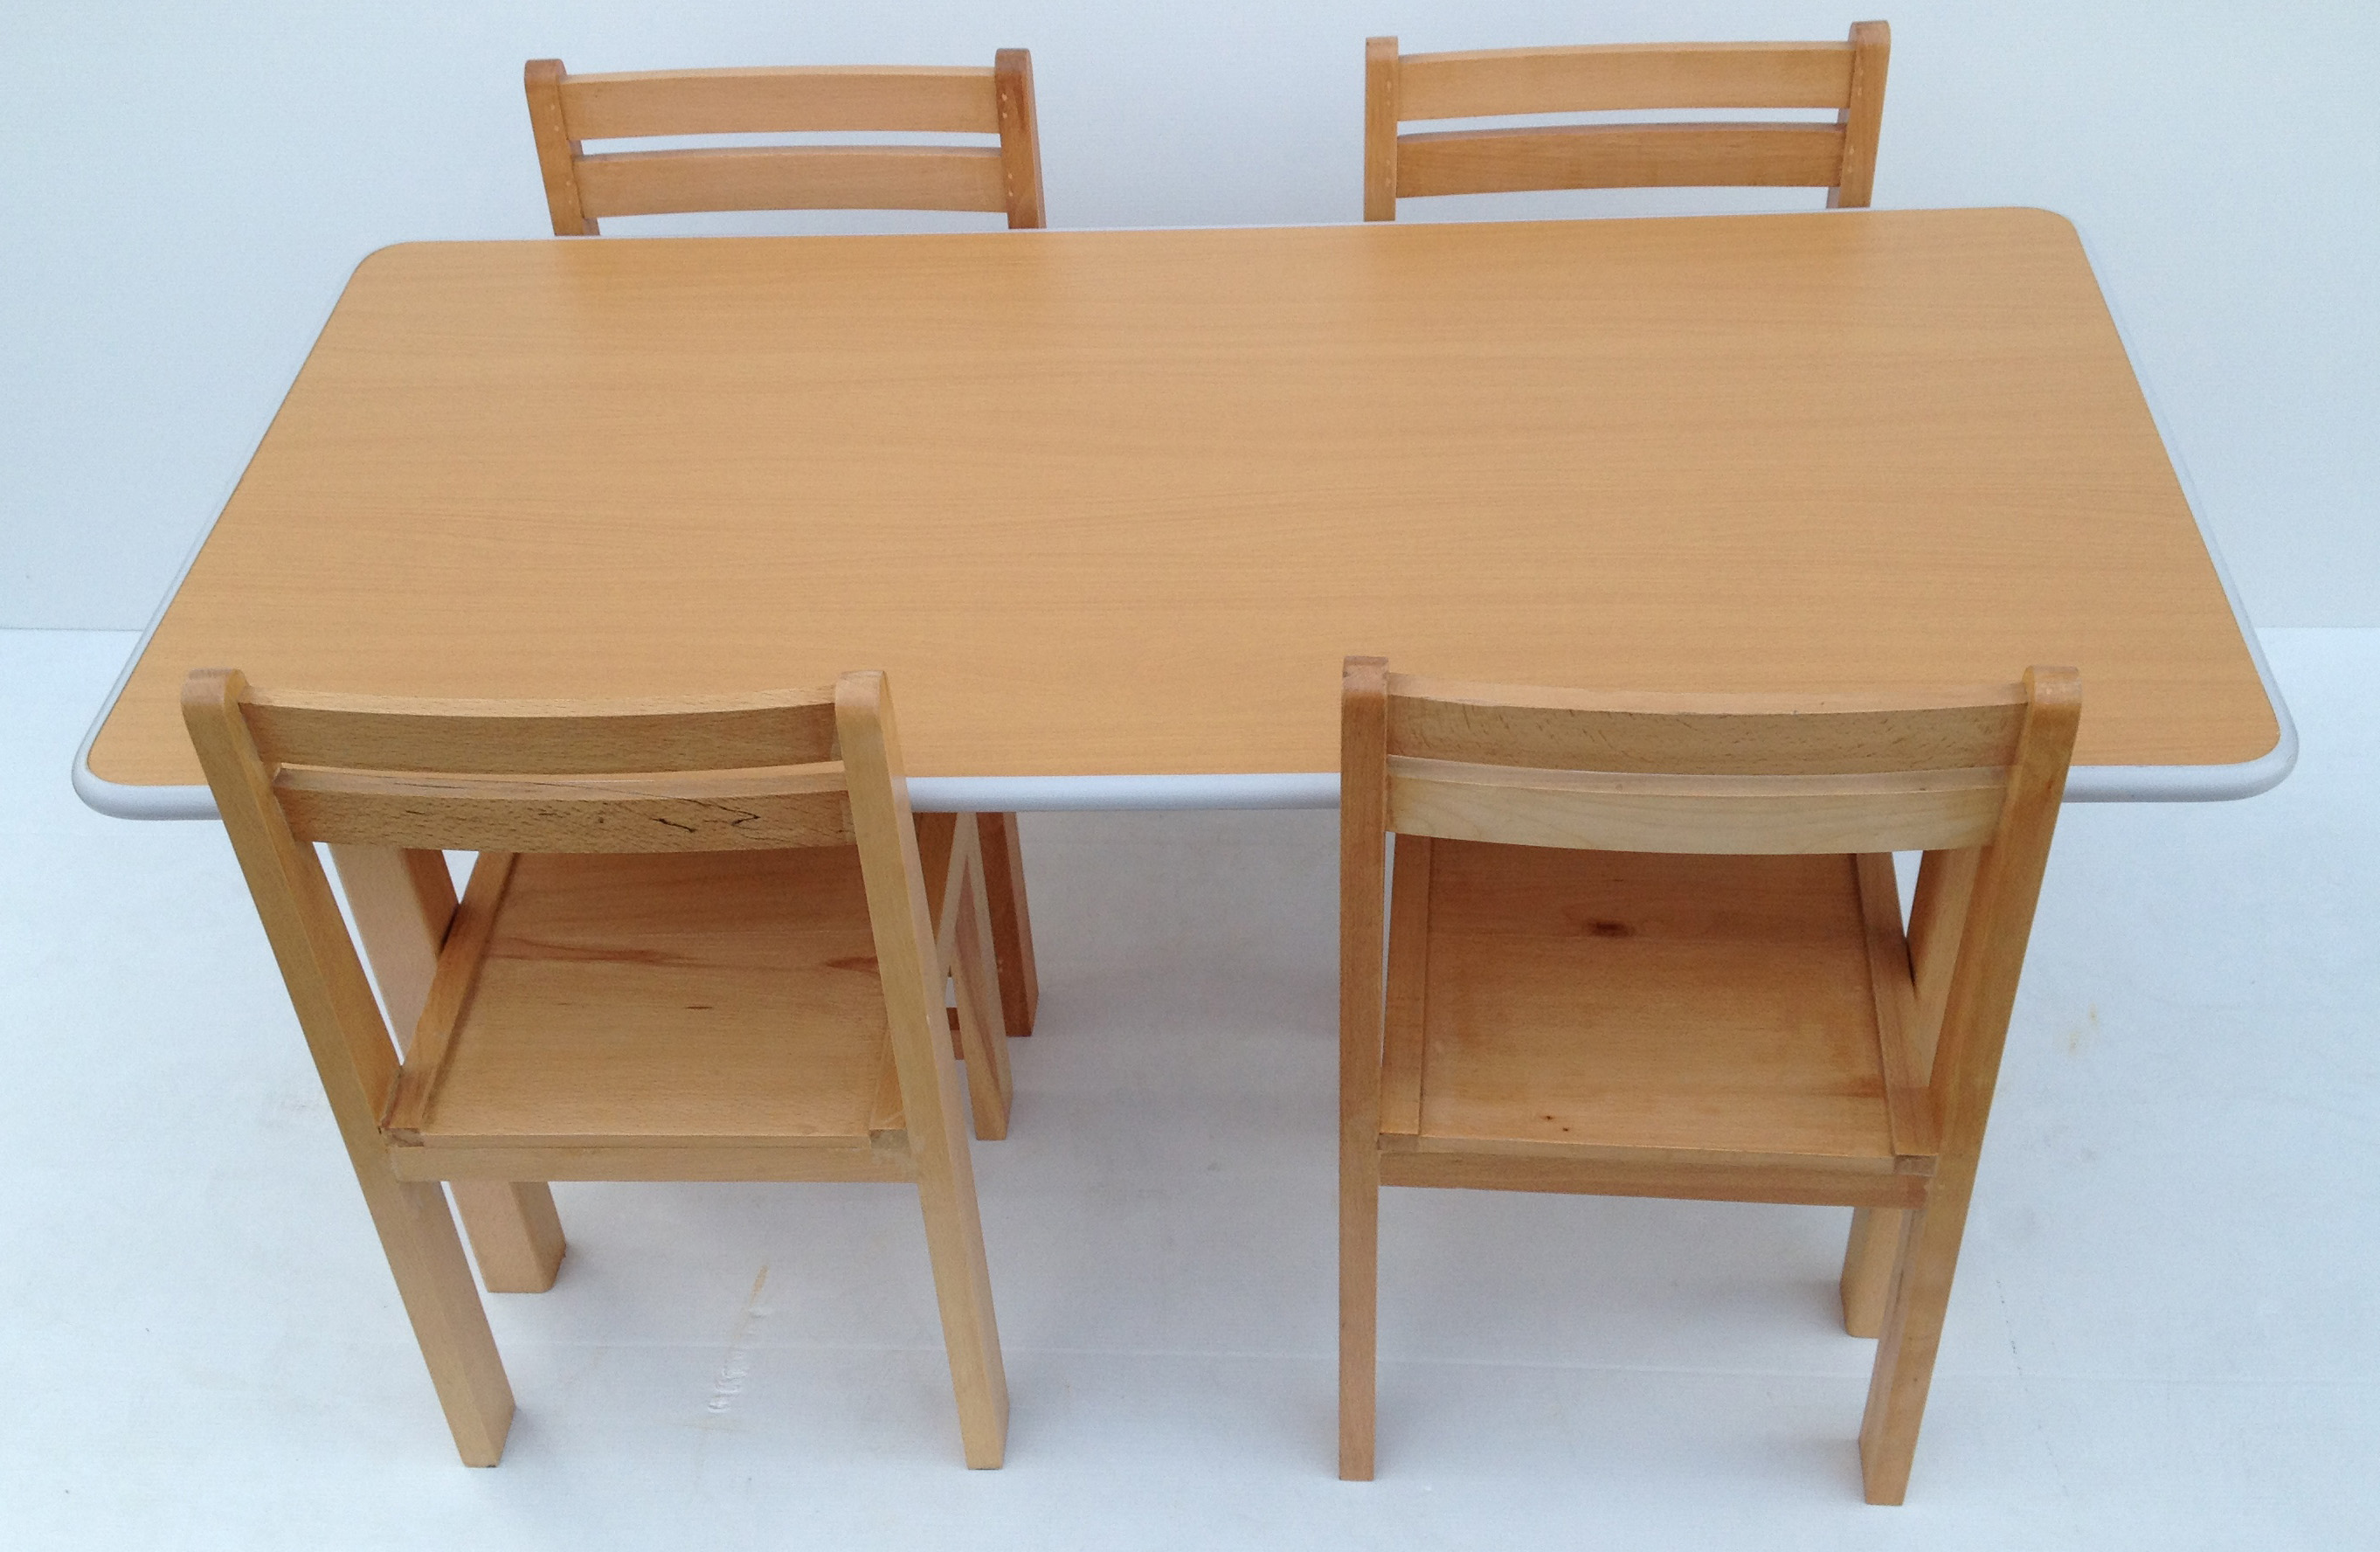 Pre School Kids Table Chairs Classroom Desk